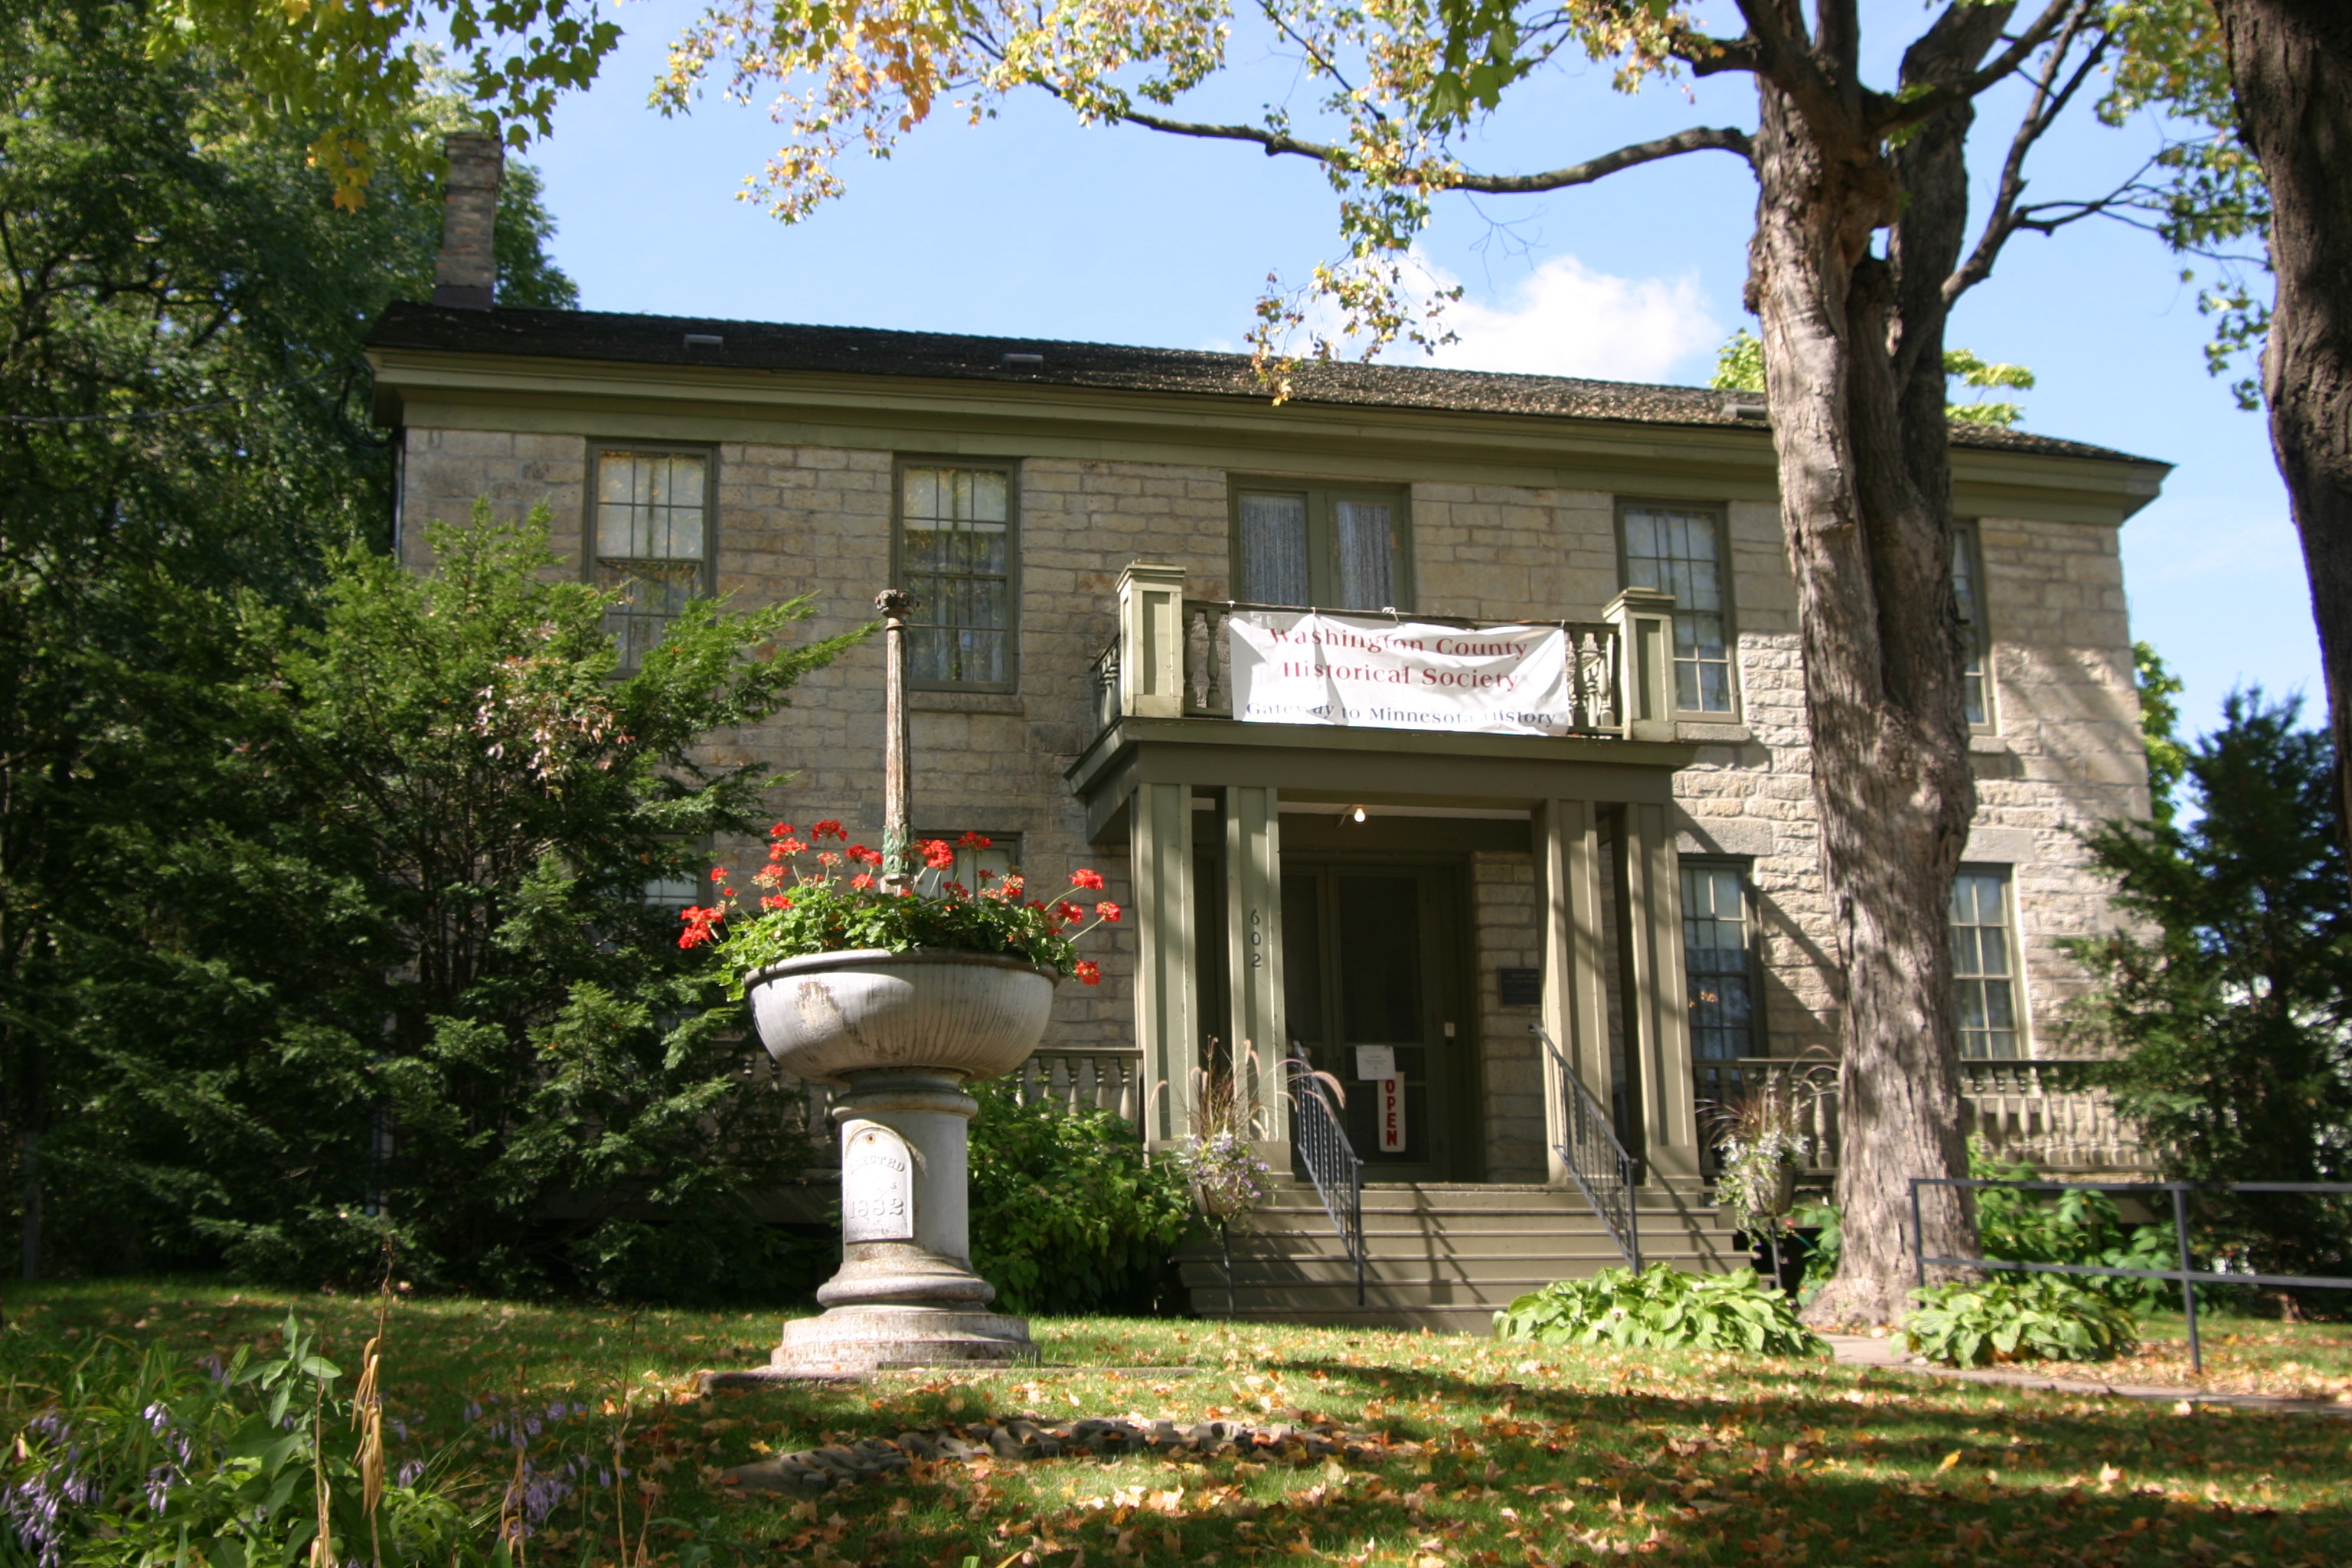 washington county historical society | gateway to minnesota history